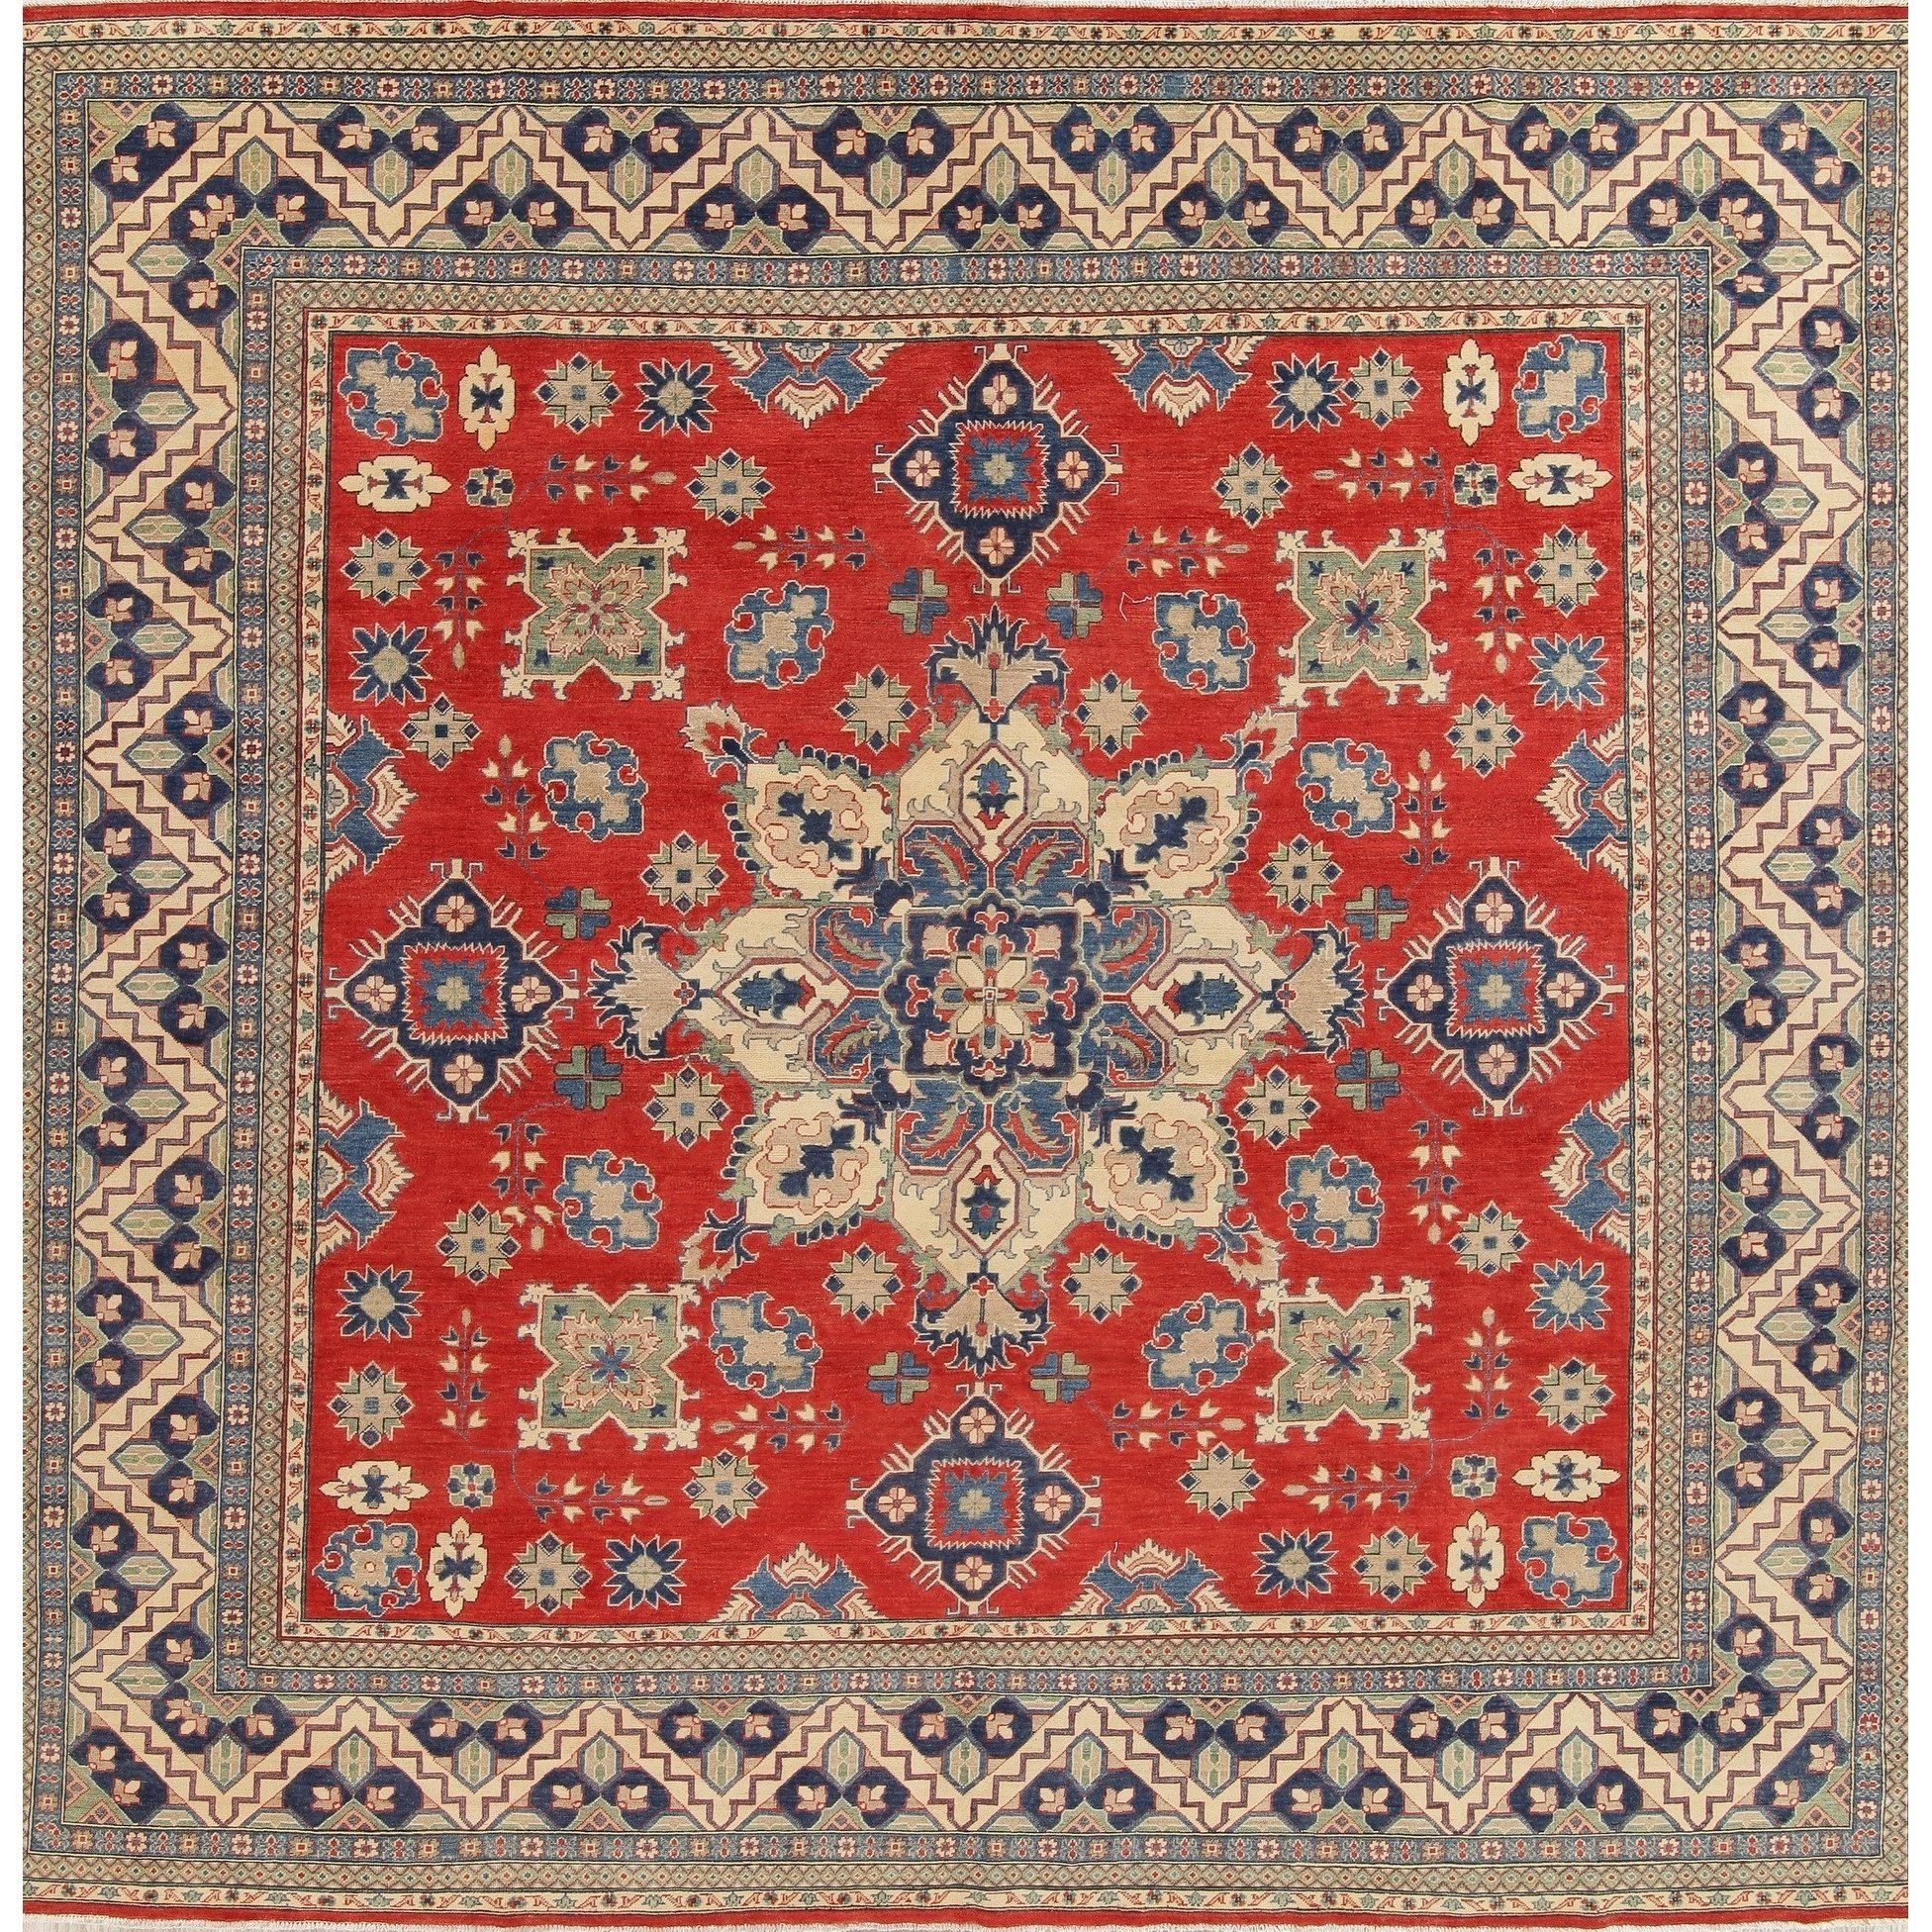 Traditional Kazak Pakistan Hand Knotted Square Oriental Wool Rug 12 6 X 13 0 Square 12 6 X 13 0 Square Red Beige Area Rugs Blue Area Rugs Colorful Rugs